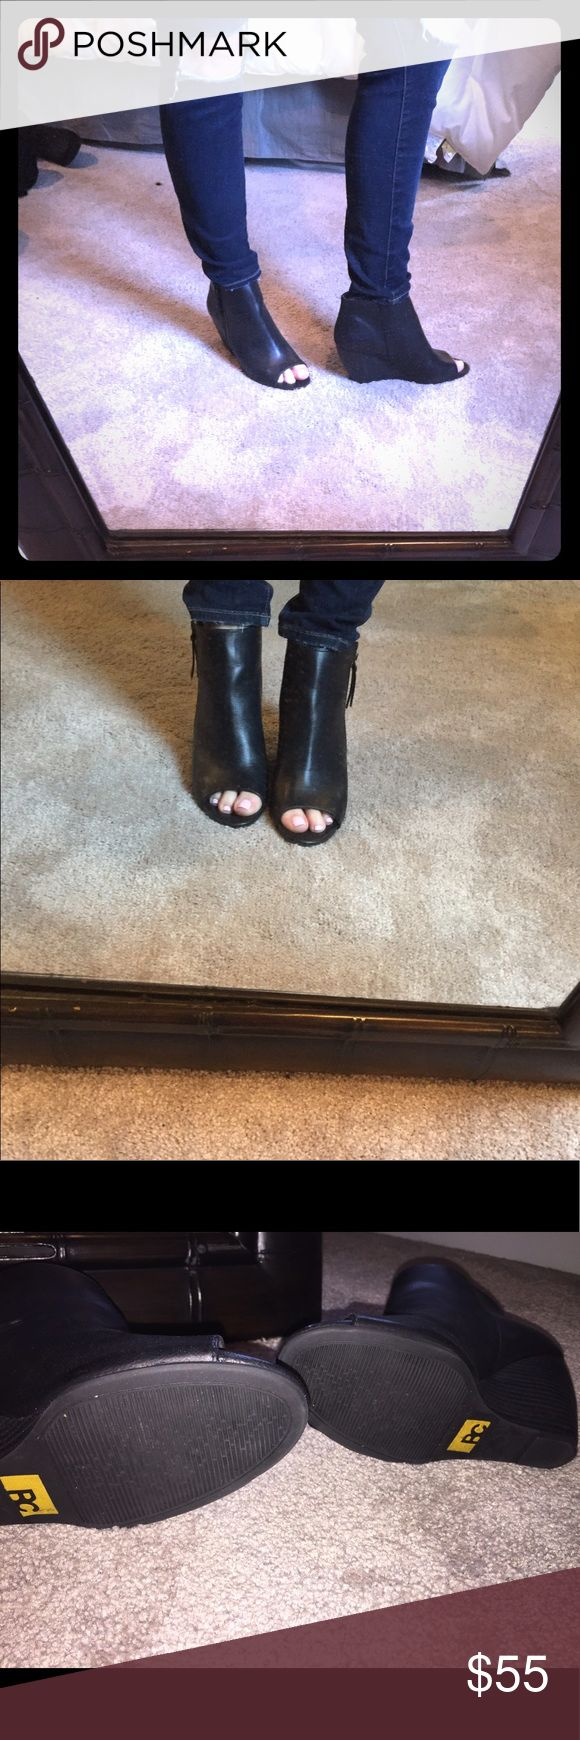 "Black leather peep toe wedge booties, size 8 Black leather peep toe wedge booties, size 8. Great condition! 3"" wedge bp Shoes Ankle Boots & Booties"